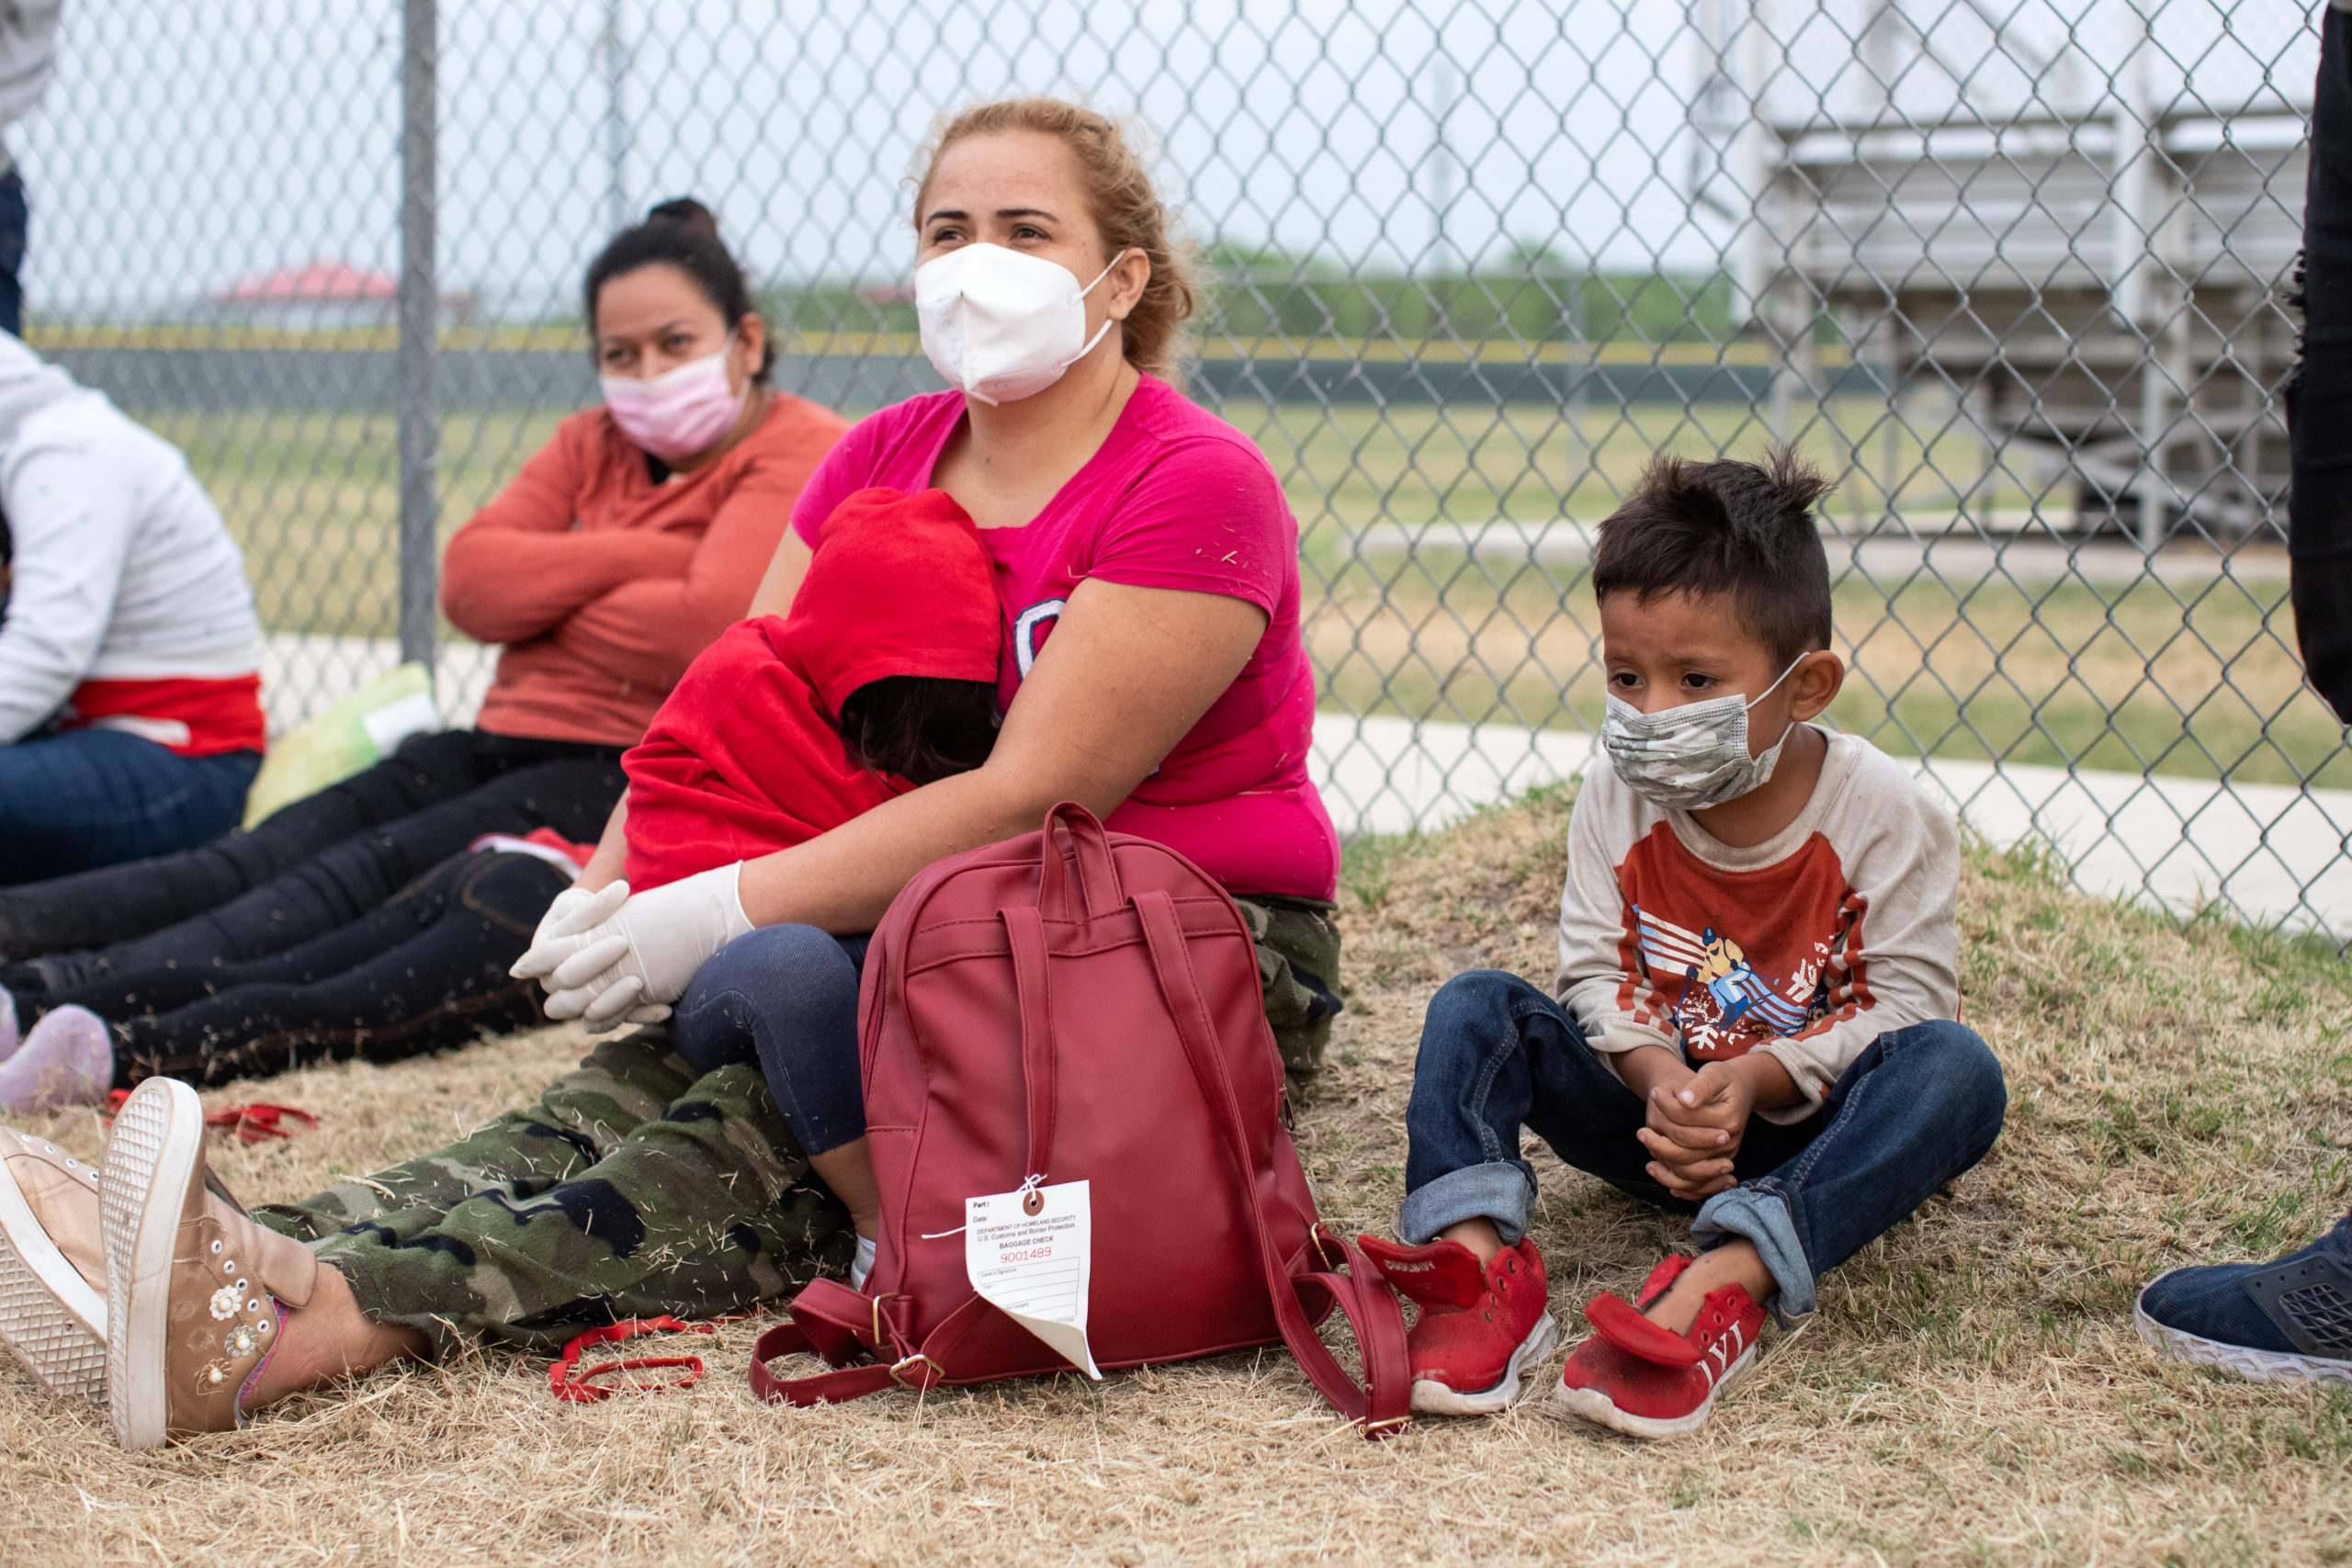 Several illegal migrants waited on the grass near the side of a public road as Customs and Border Protection officials worked to process the groups in La Joya, Texas on March 27, 2021. (Kaylee Greenlee - Daily Caller News Foundation)